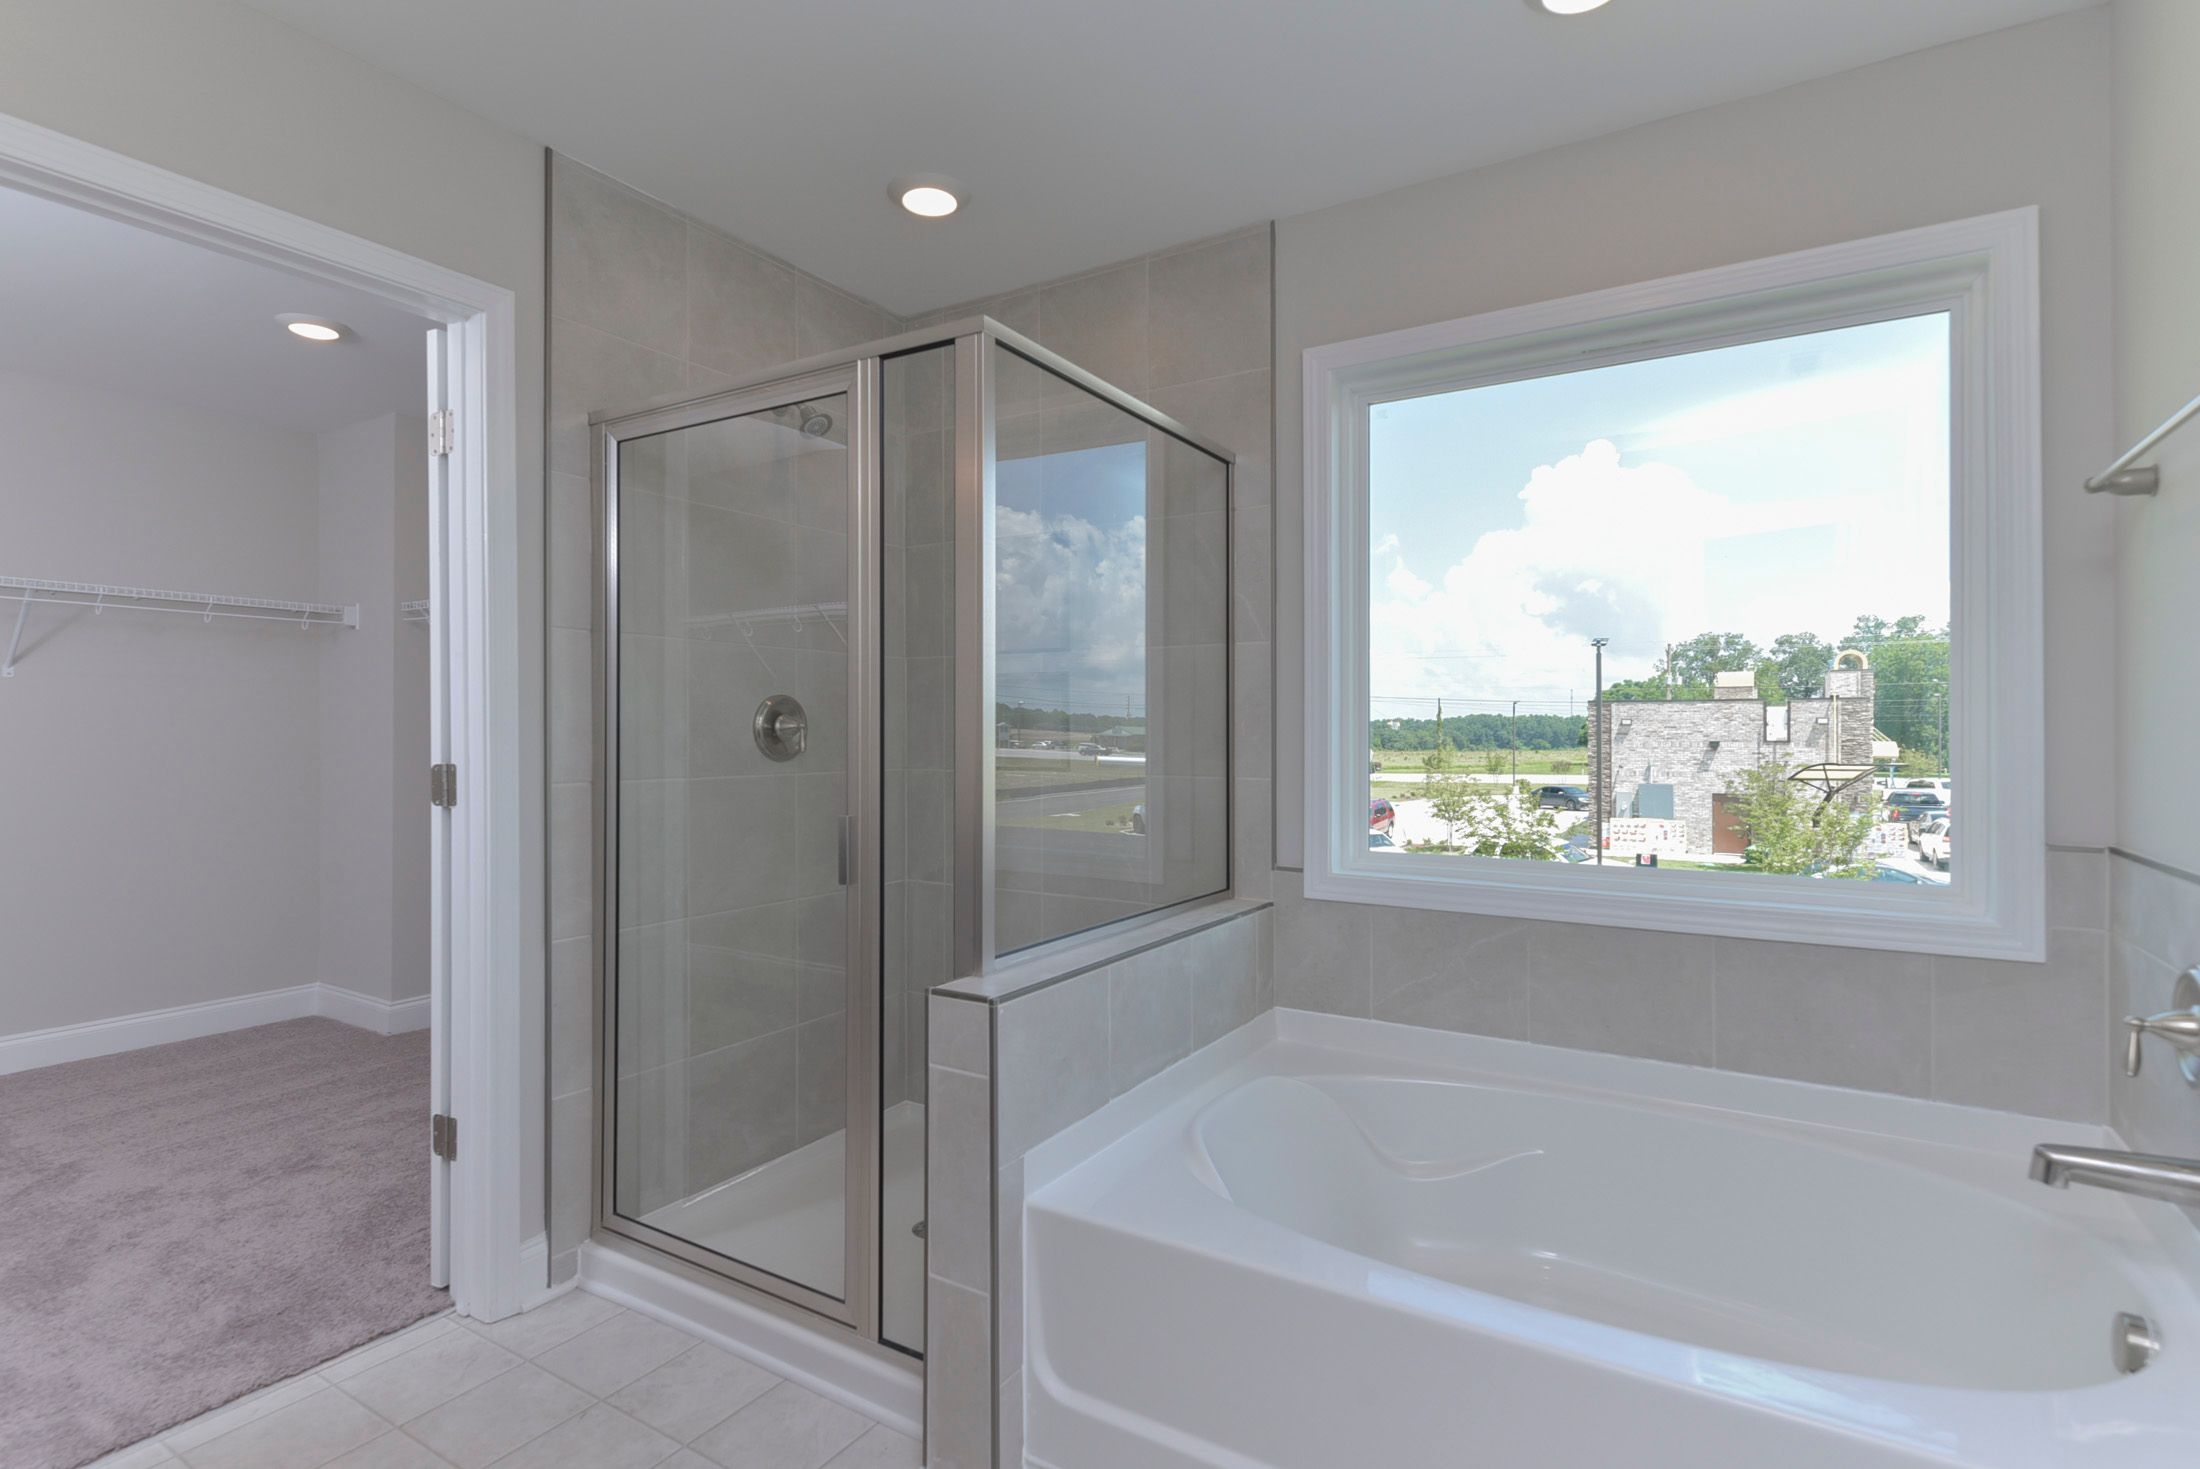 Bathroom featured in the Drexel By Eastwood Homes in Columbia, SC